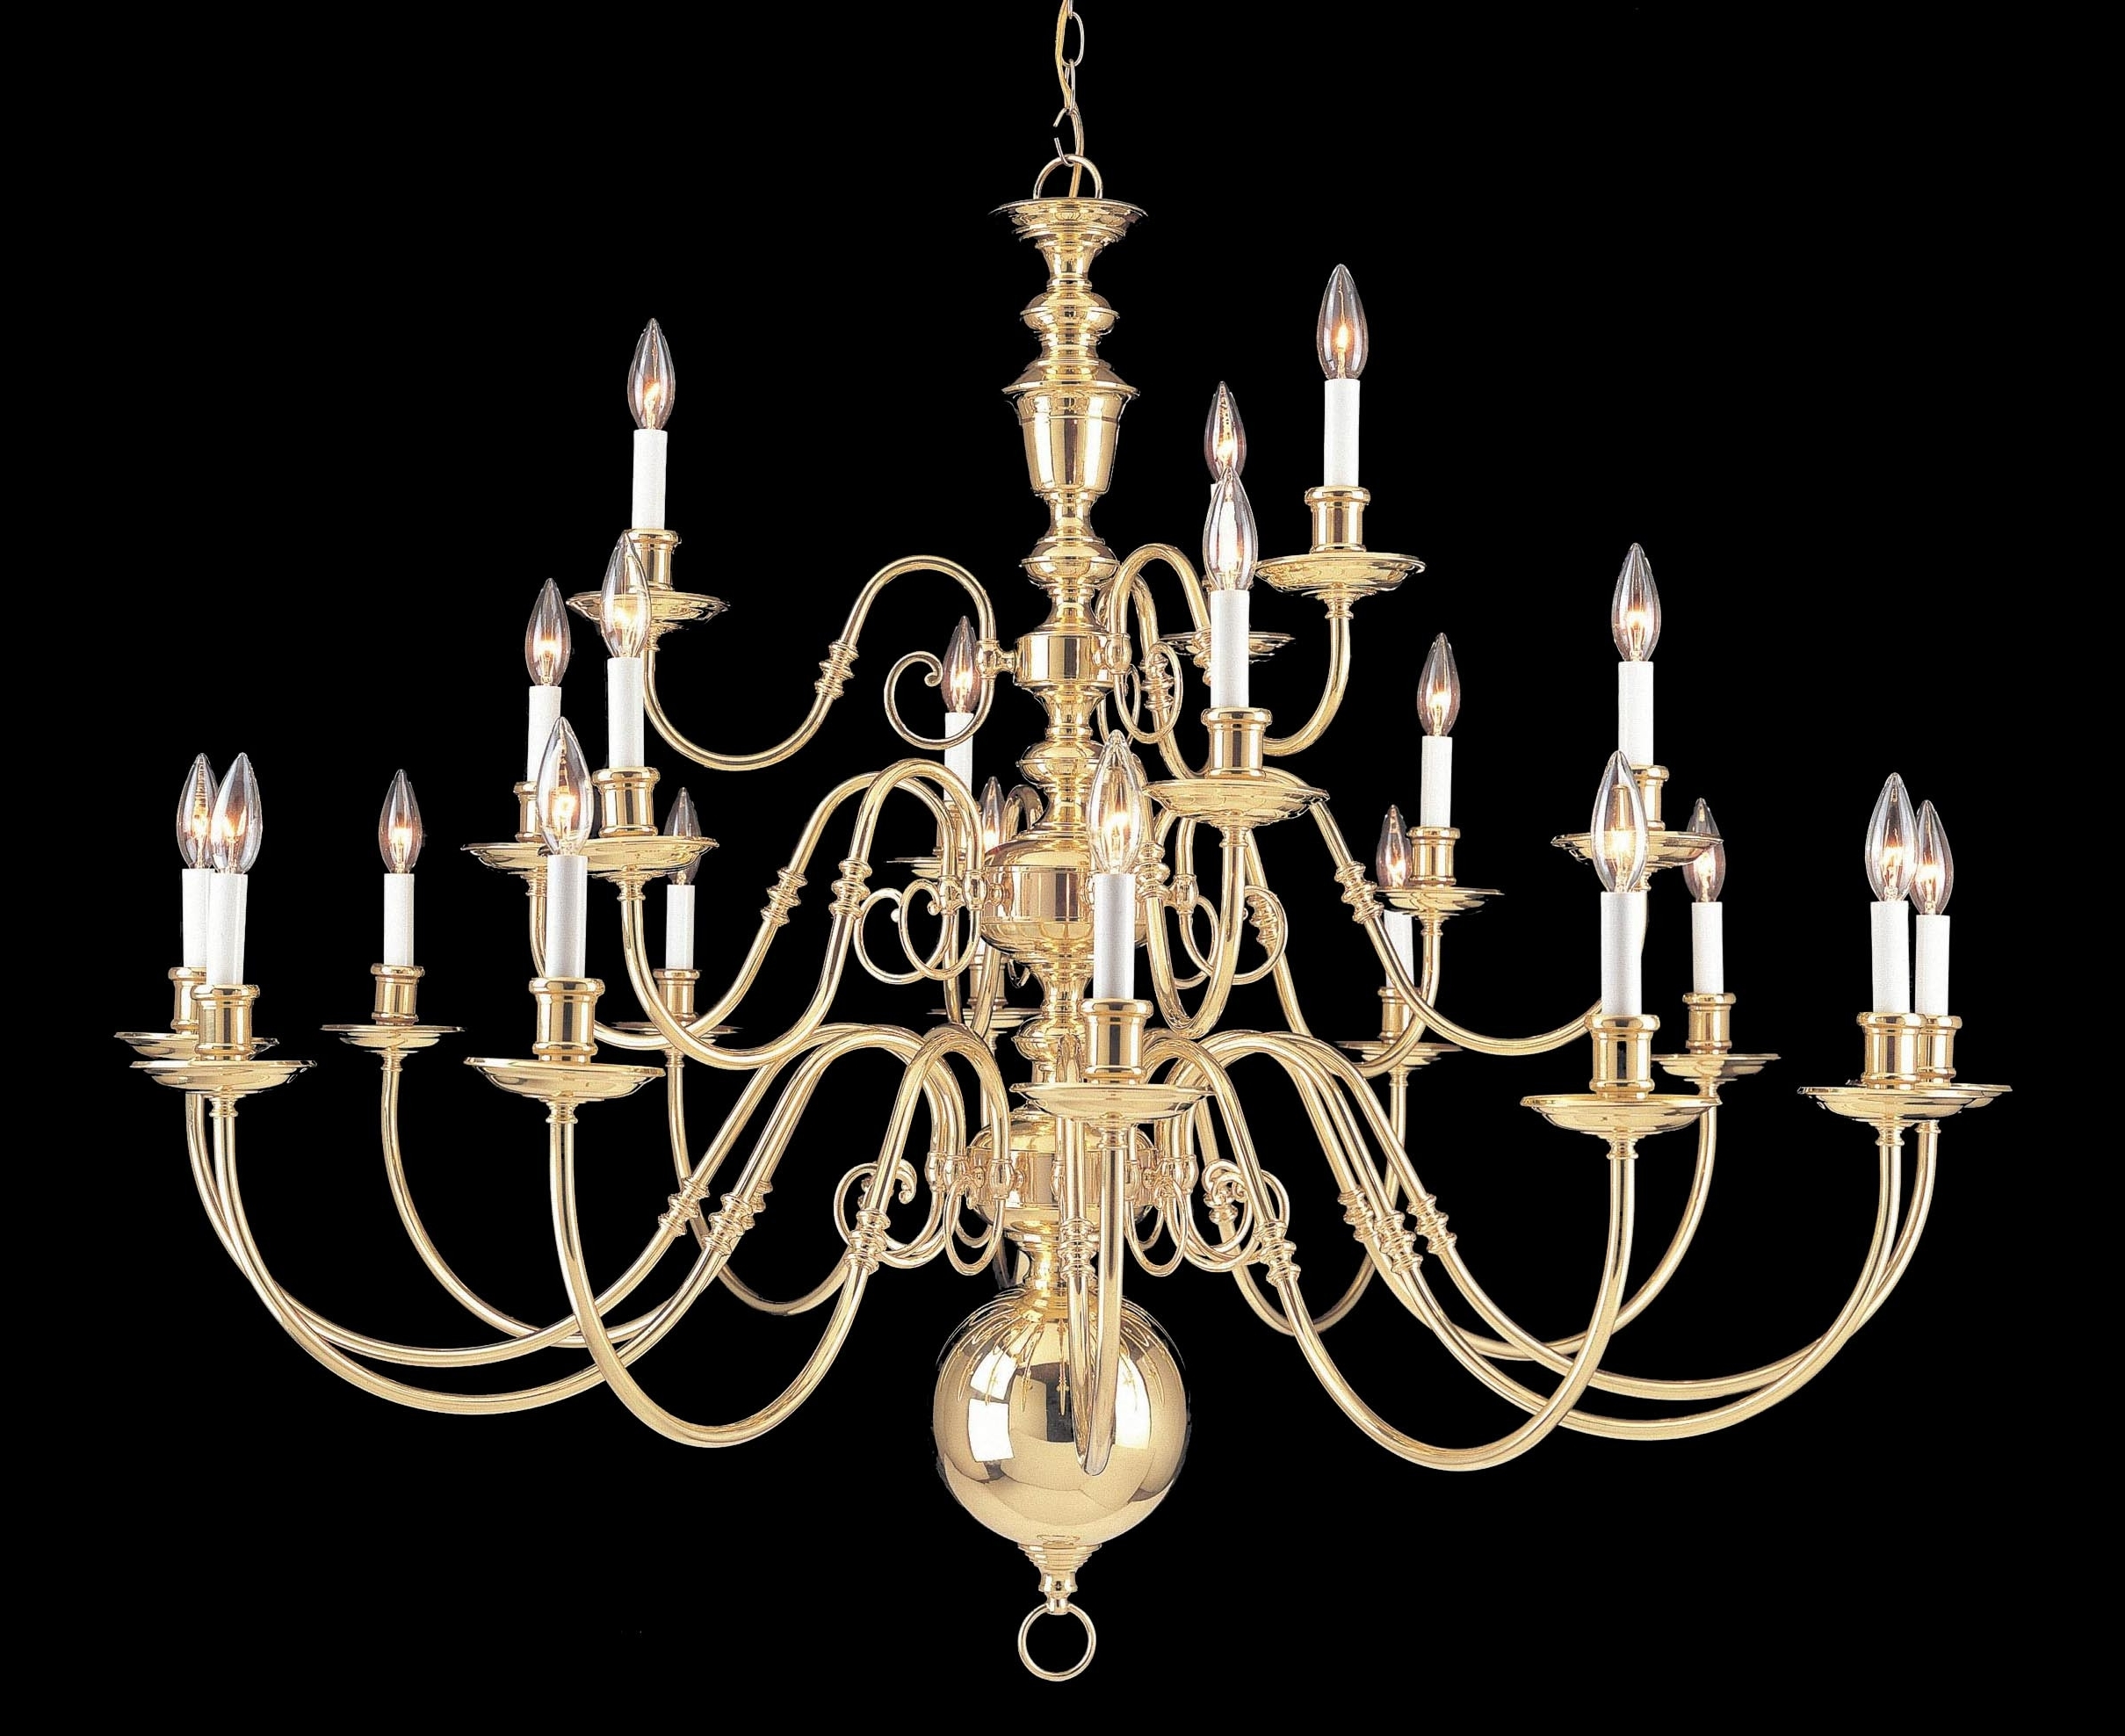 2017 Traditional Brass Chandeliers In Chandeliers : Marvelous Brass Chandeliers New 12 Best Collection Of (View 14 of 15)